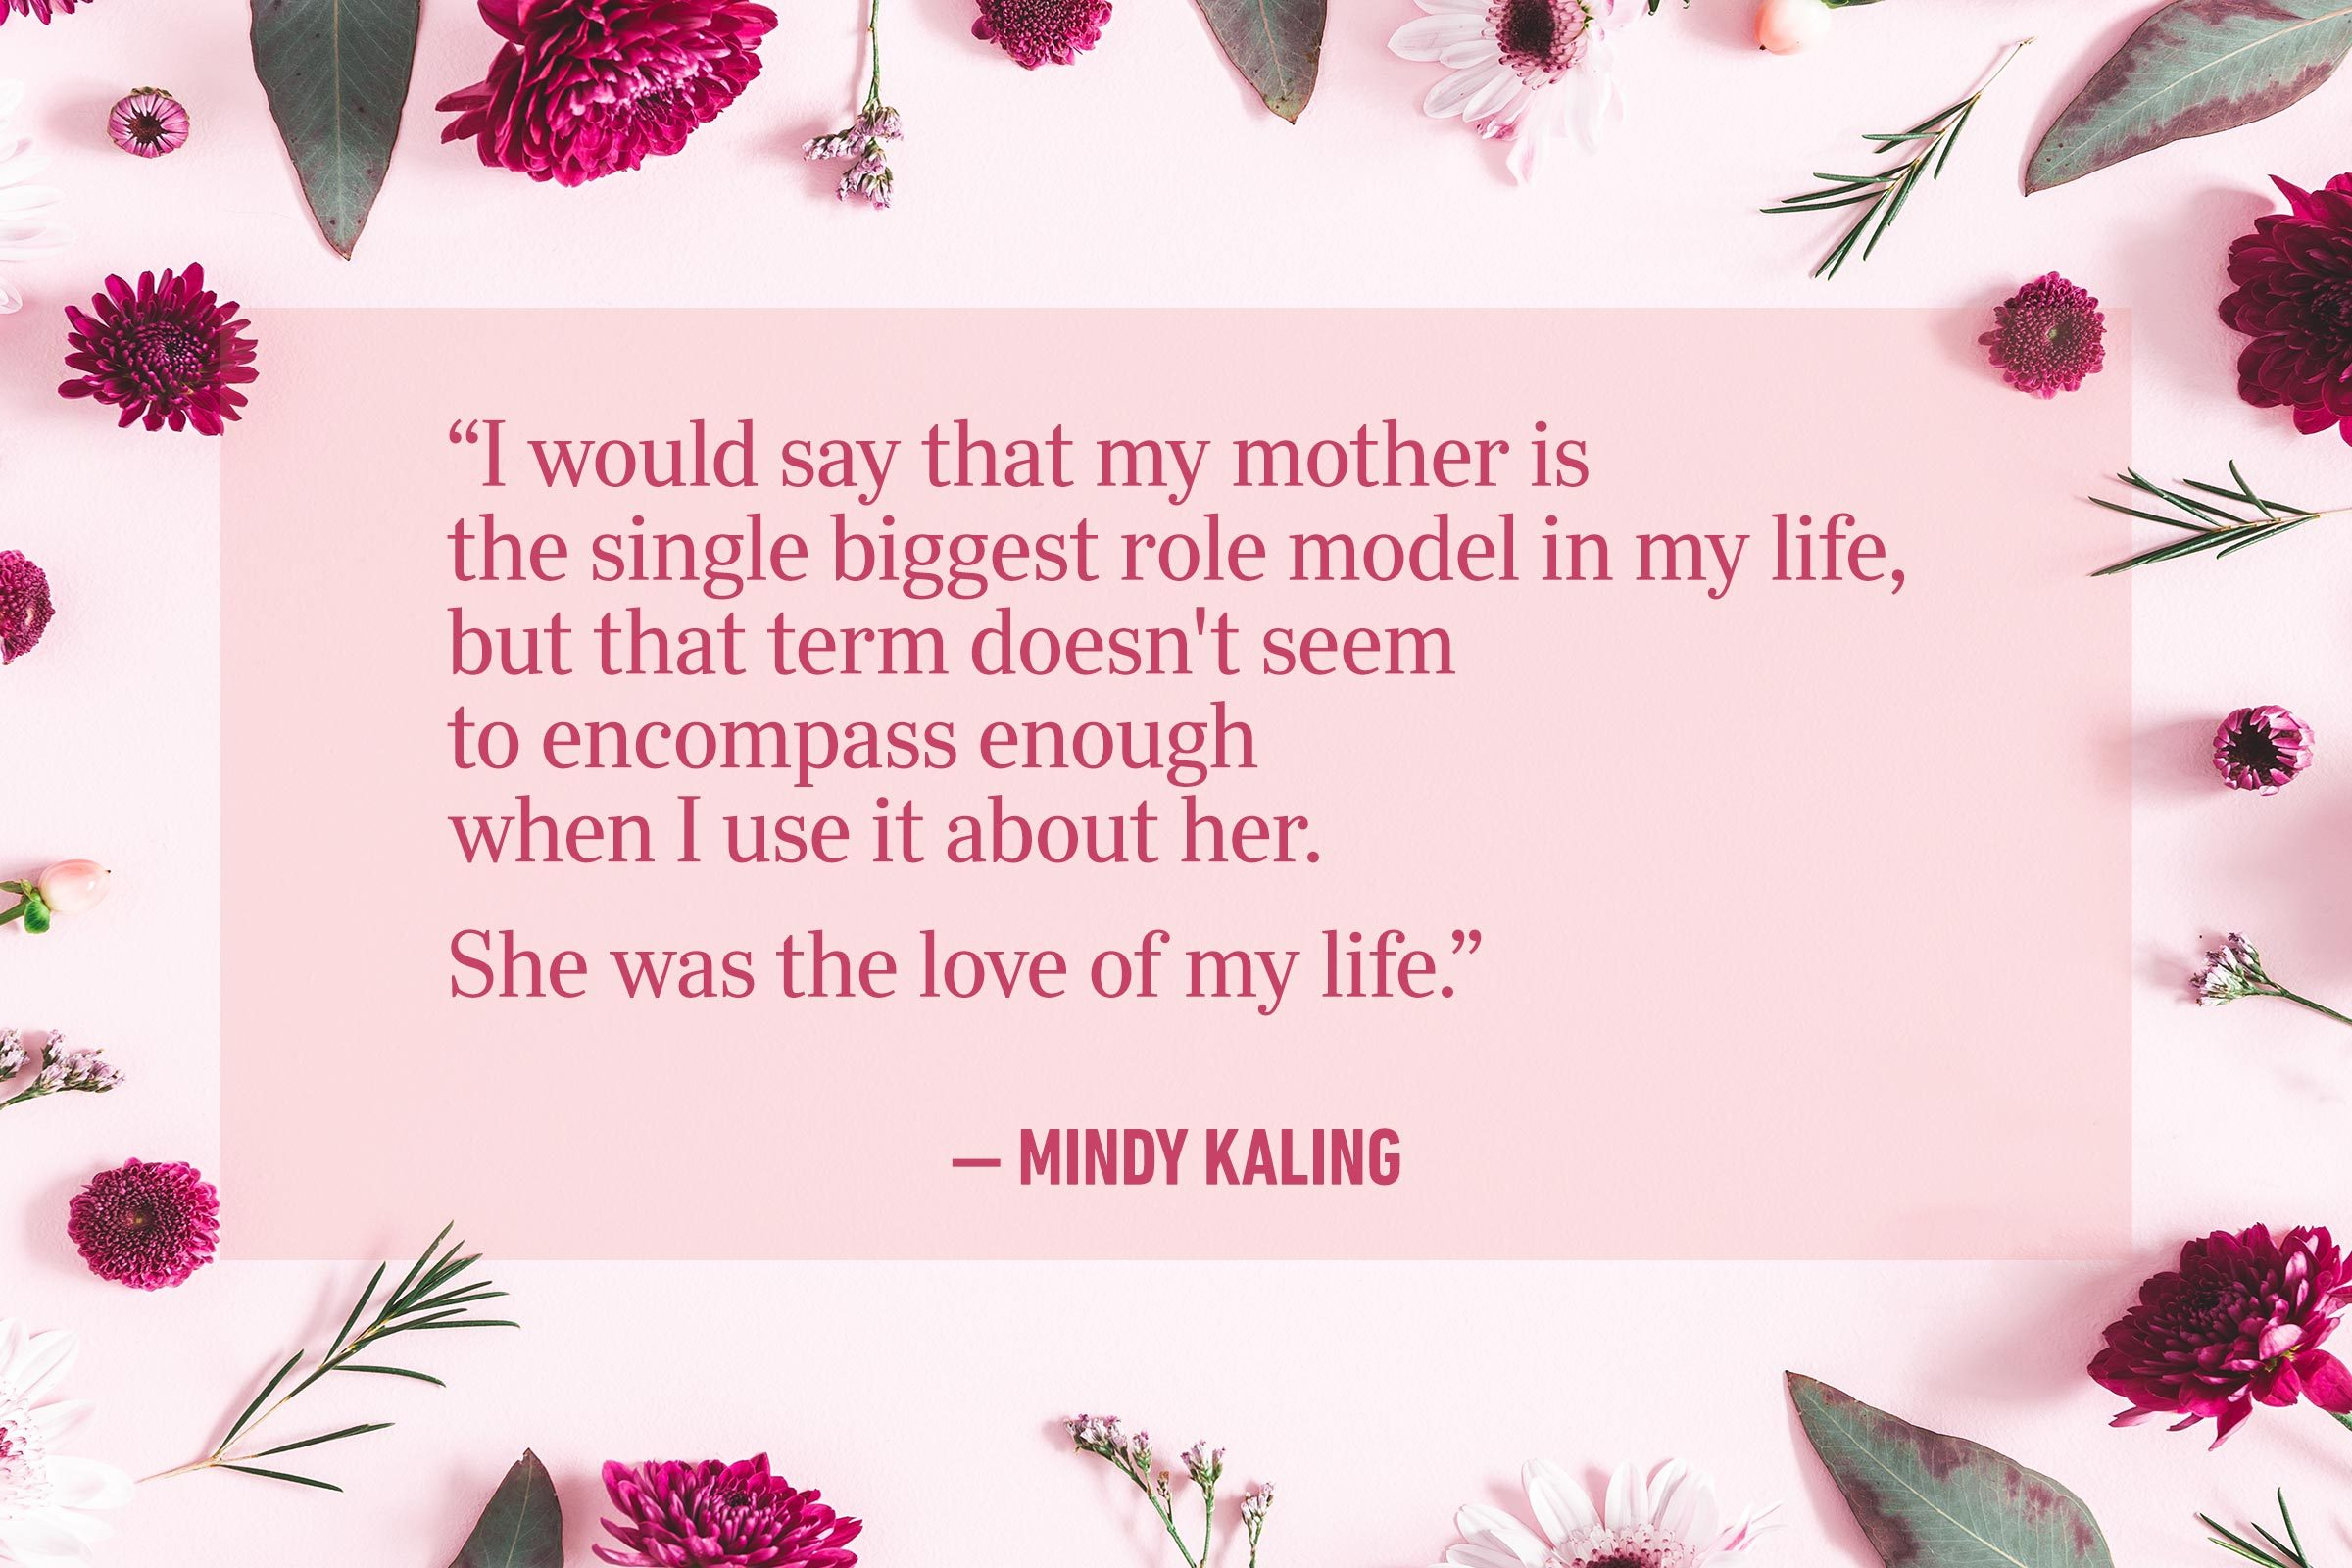 """""""I would say that my mother is the single biggest role model in my life, but that term doesn't seem to encompass enough when I use it about her. She was the love of my life."""" —Mindy Kaling"""